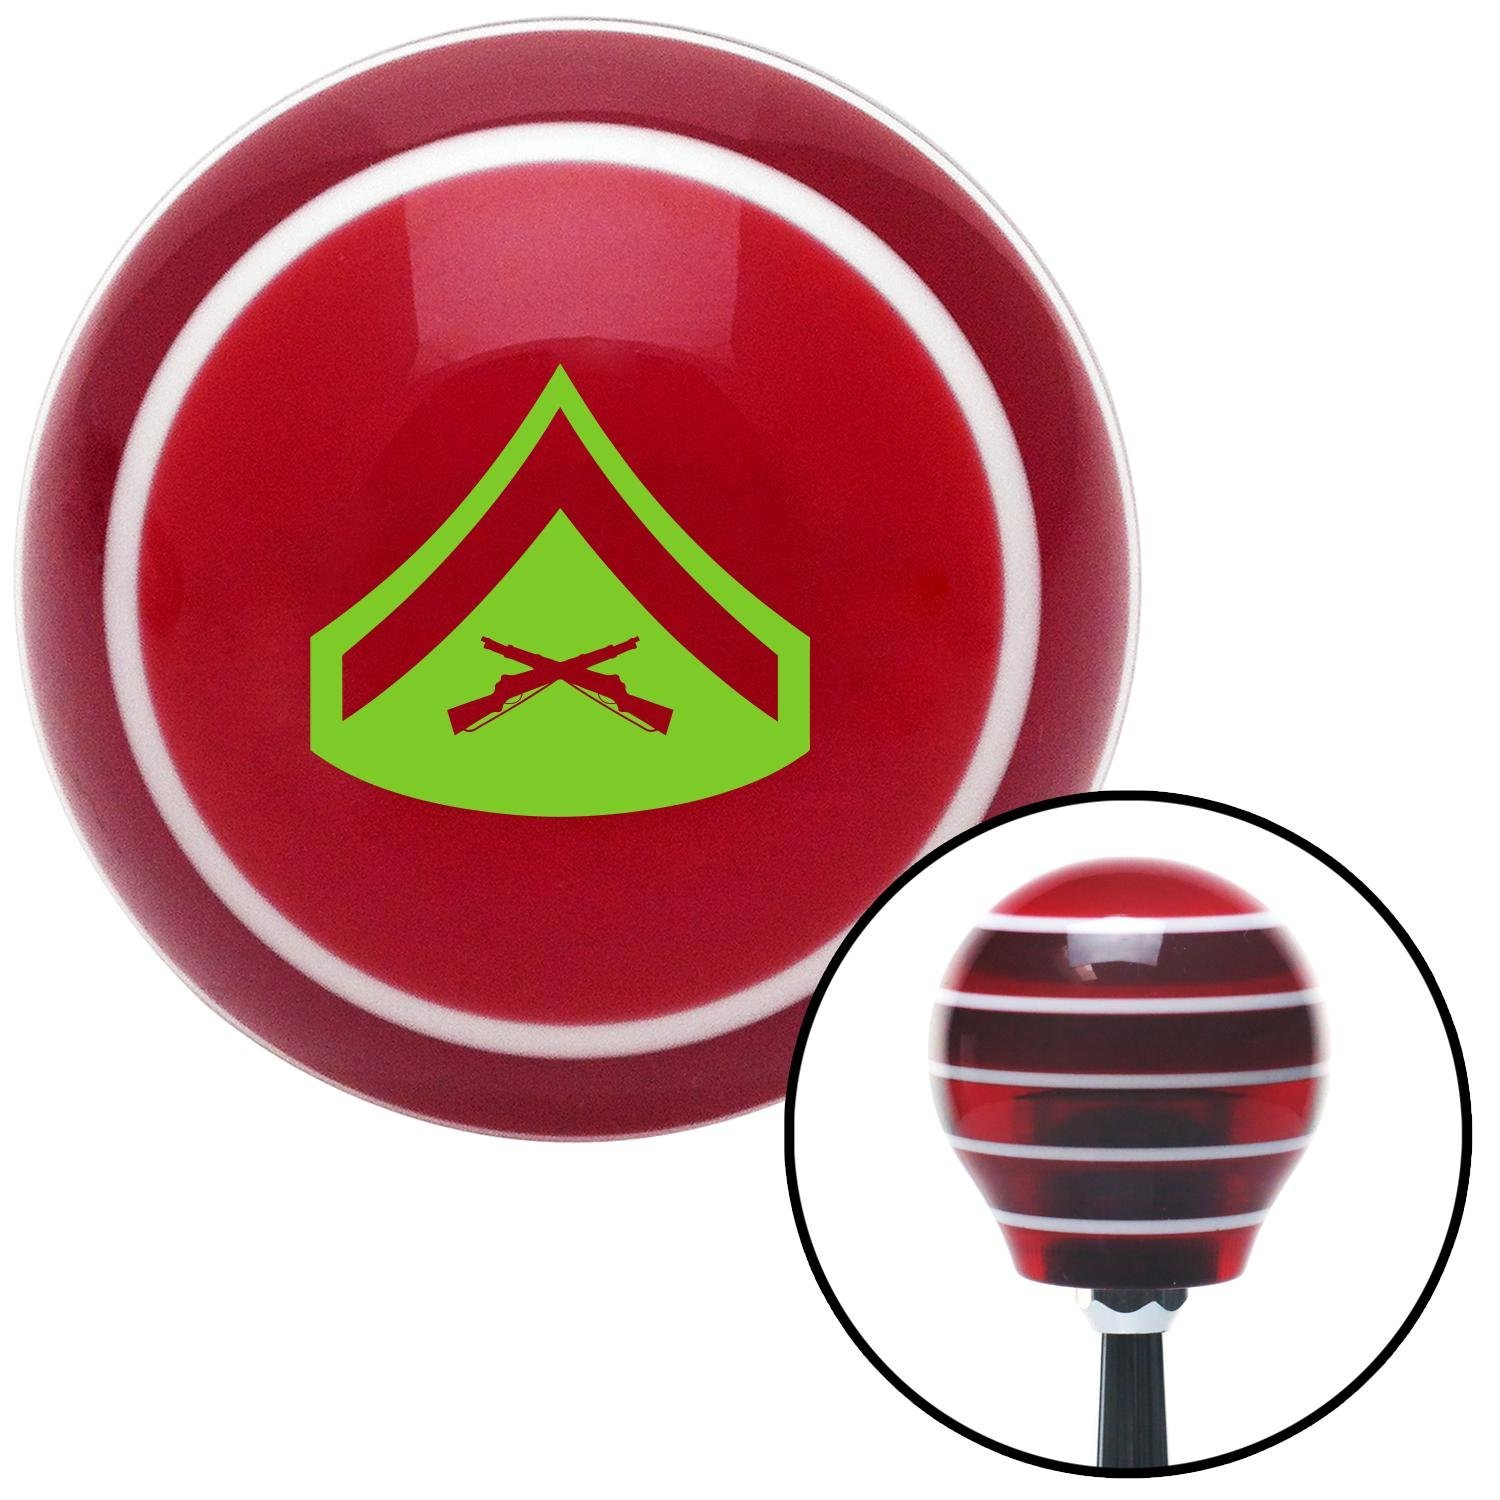 American Shifter 115989 Red Stripe Shift Knob with M16 x 1.5 Insert Green 02 Lance Corporal